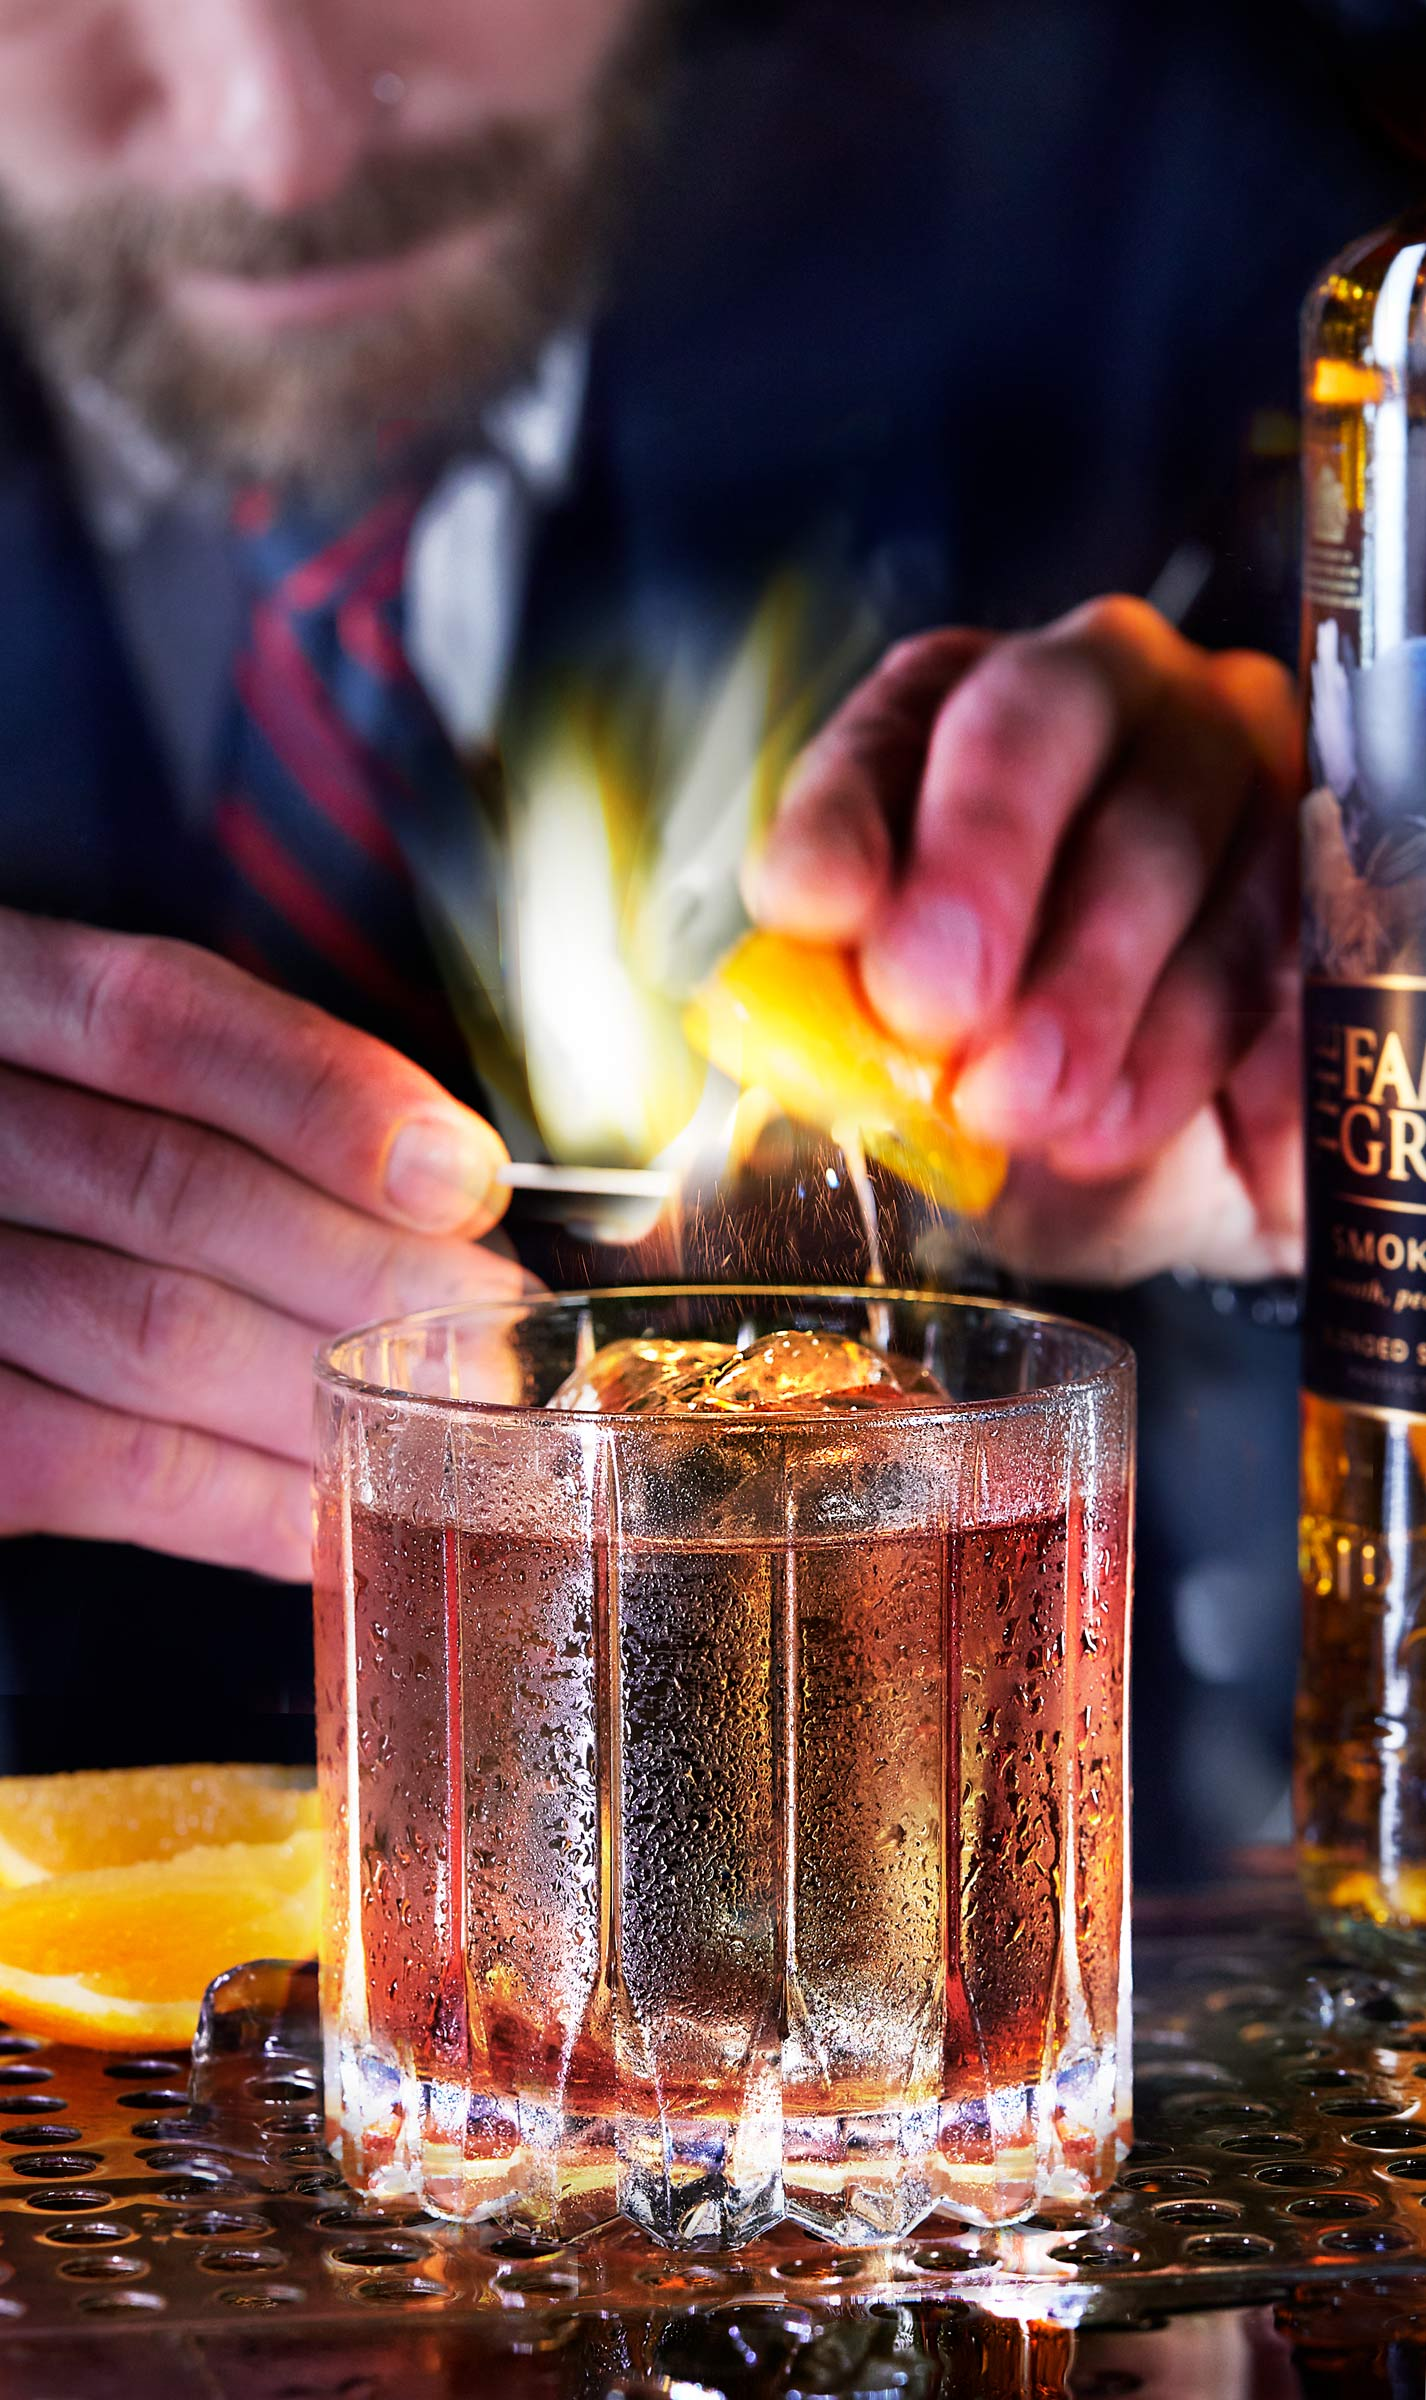 Smoky Bourbon with lemon twist on fire bartender